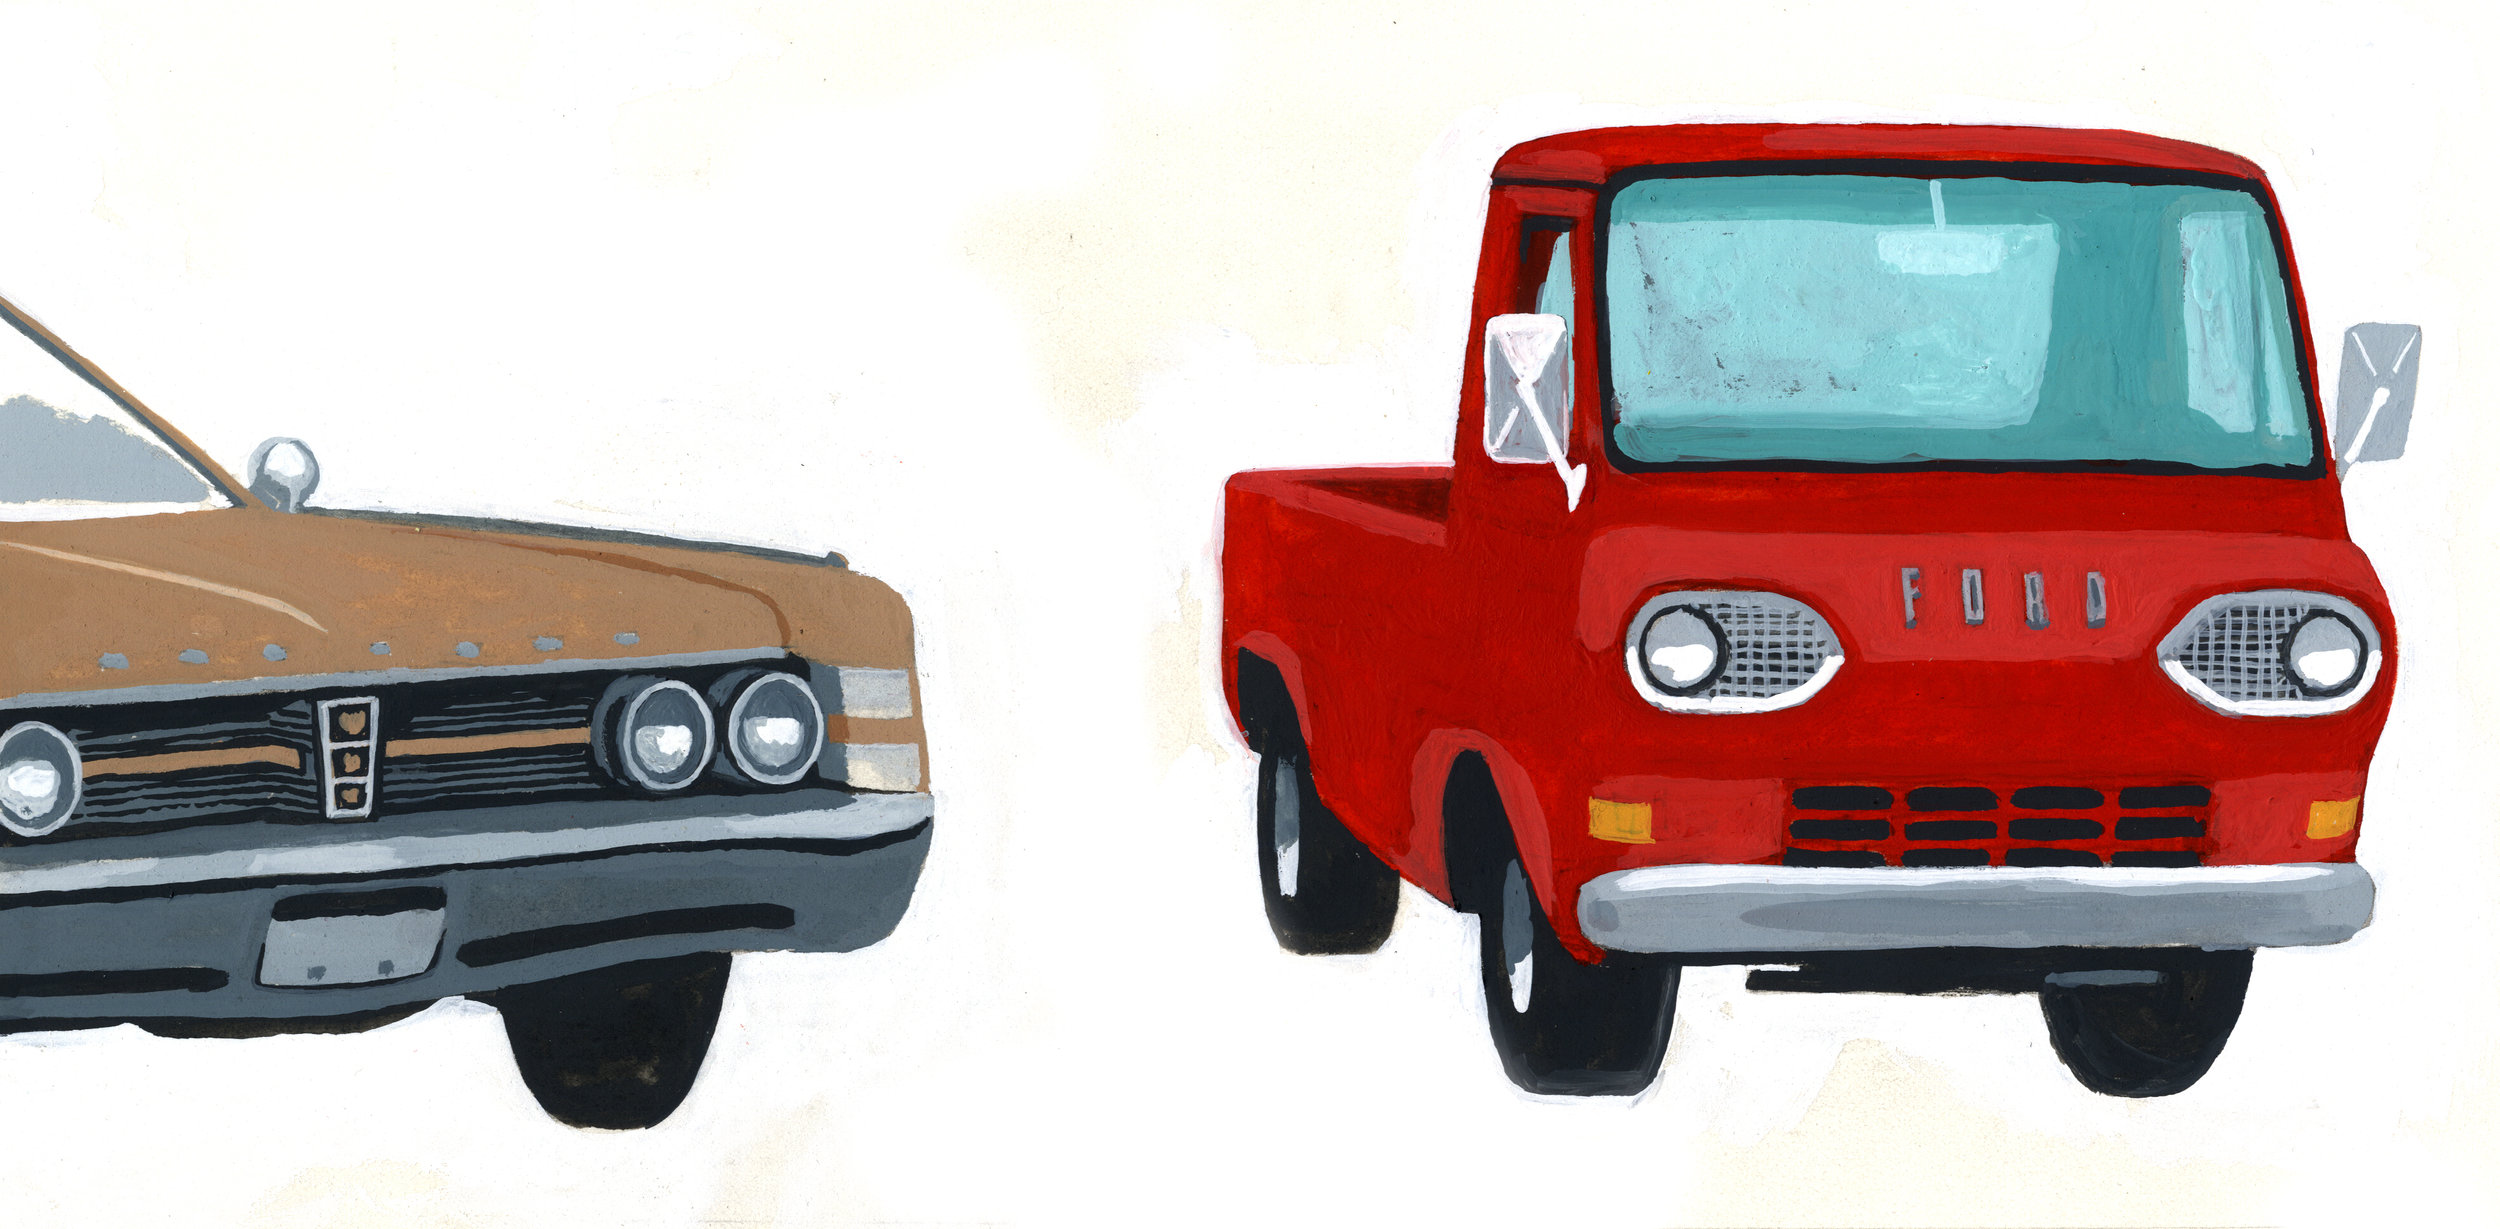 D.B. Dowd,  Oldsmobile and Ford Econoline Van , from  Spartan Holiday  1, 2012.